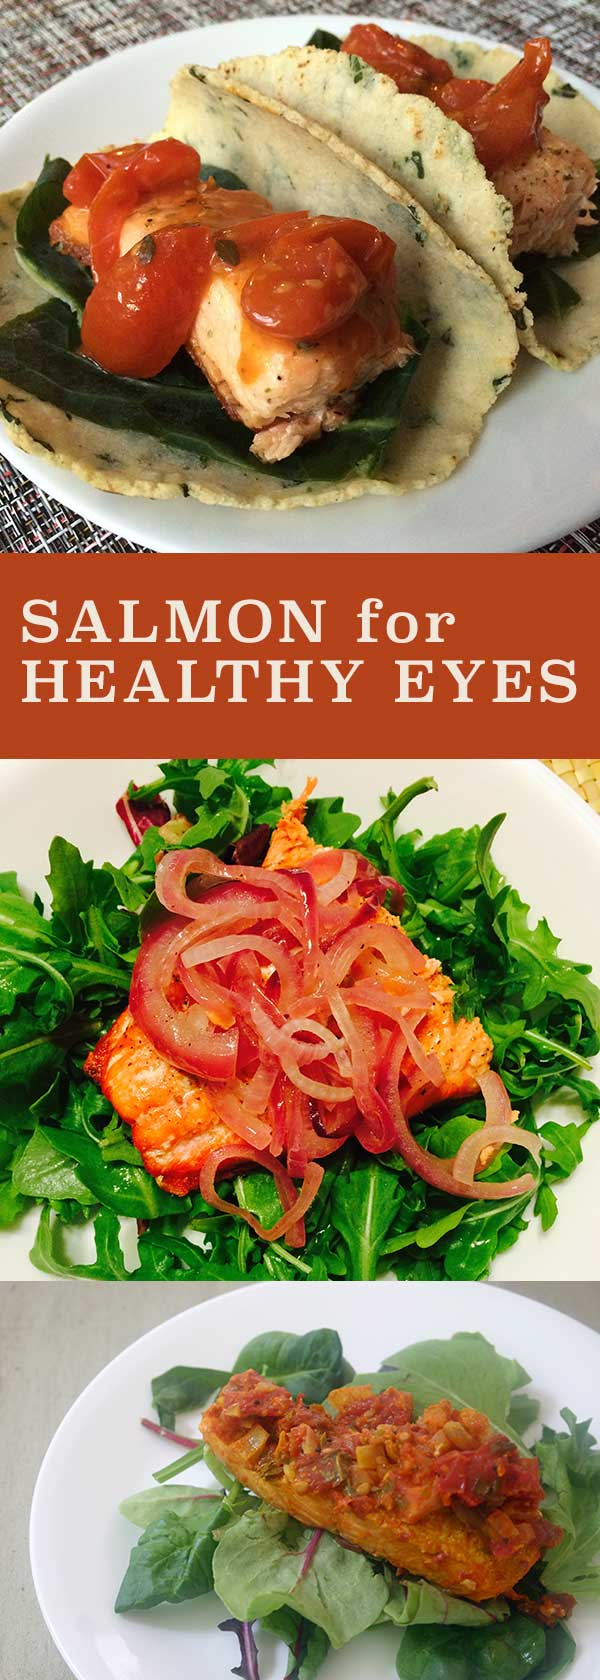 Salmon Recipes for Healthy Eyes | diabeticfoodie.com